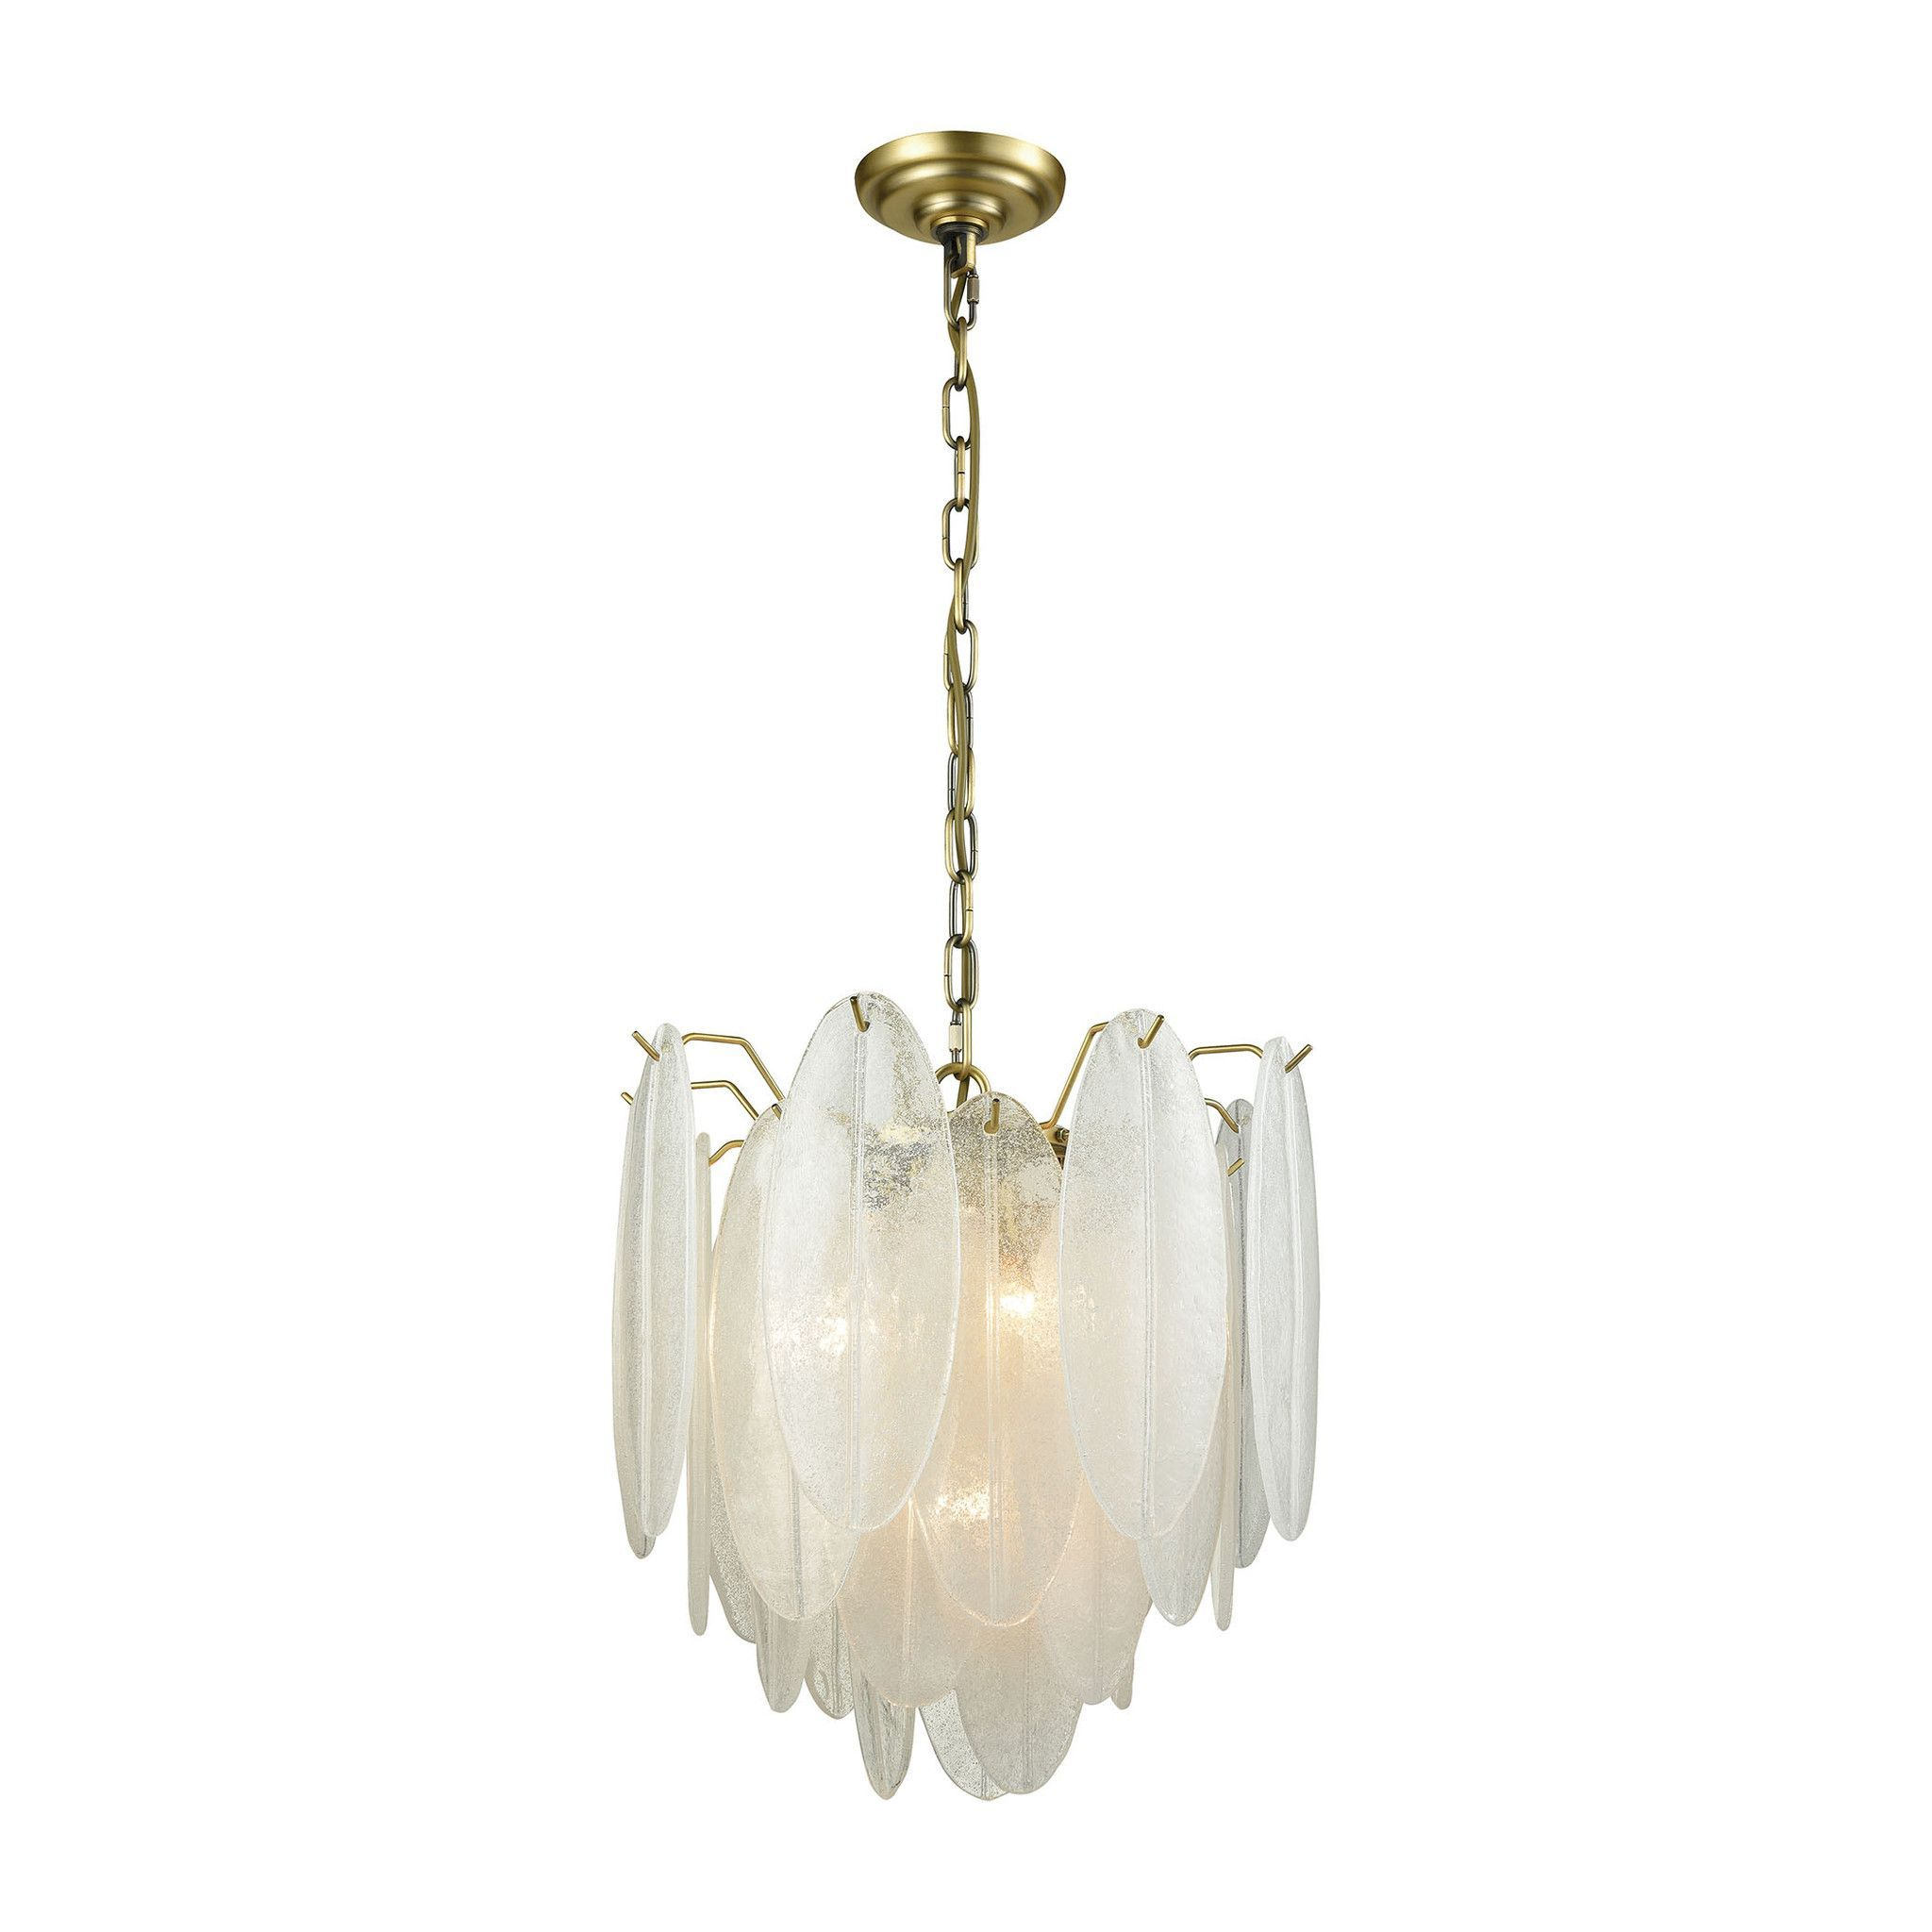 Hush Pendant Chandelier Small in White Finish Handcrafted